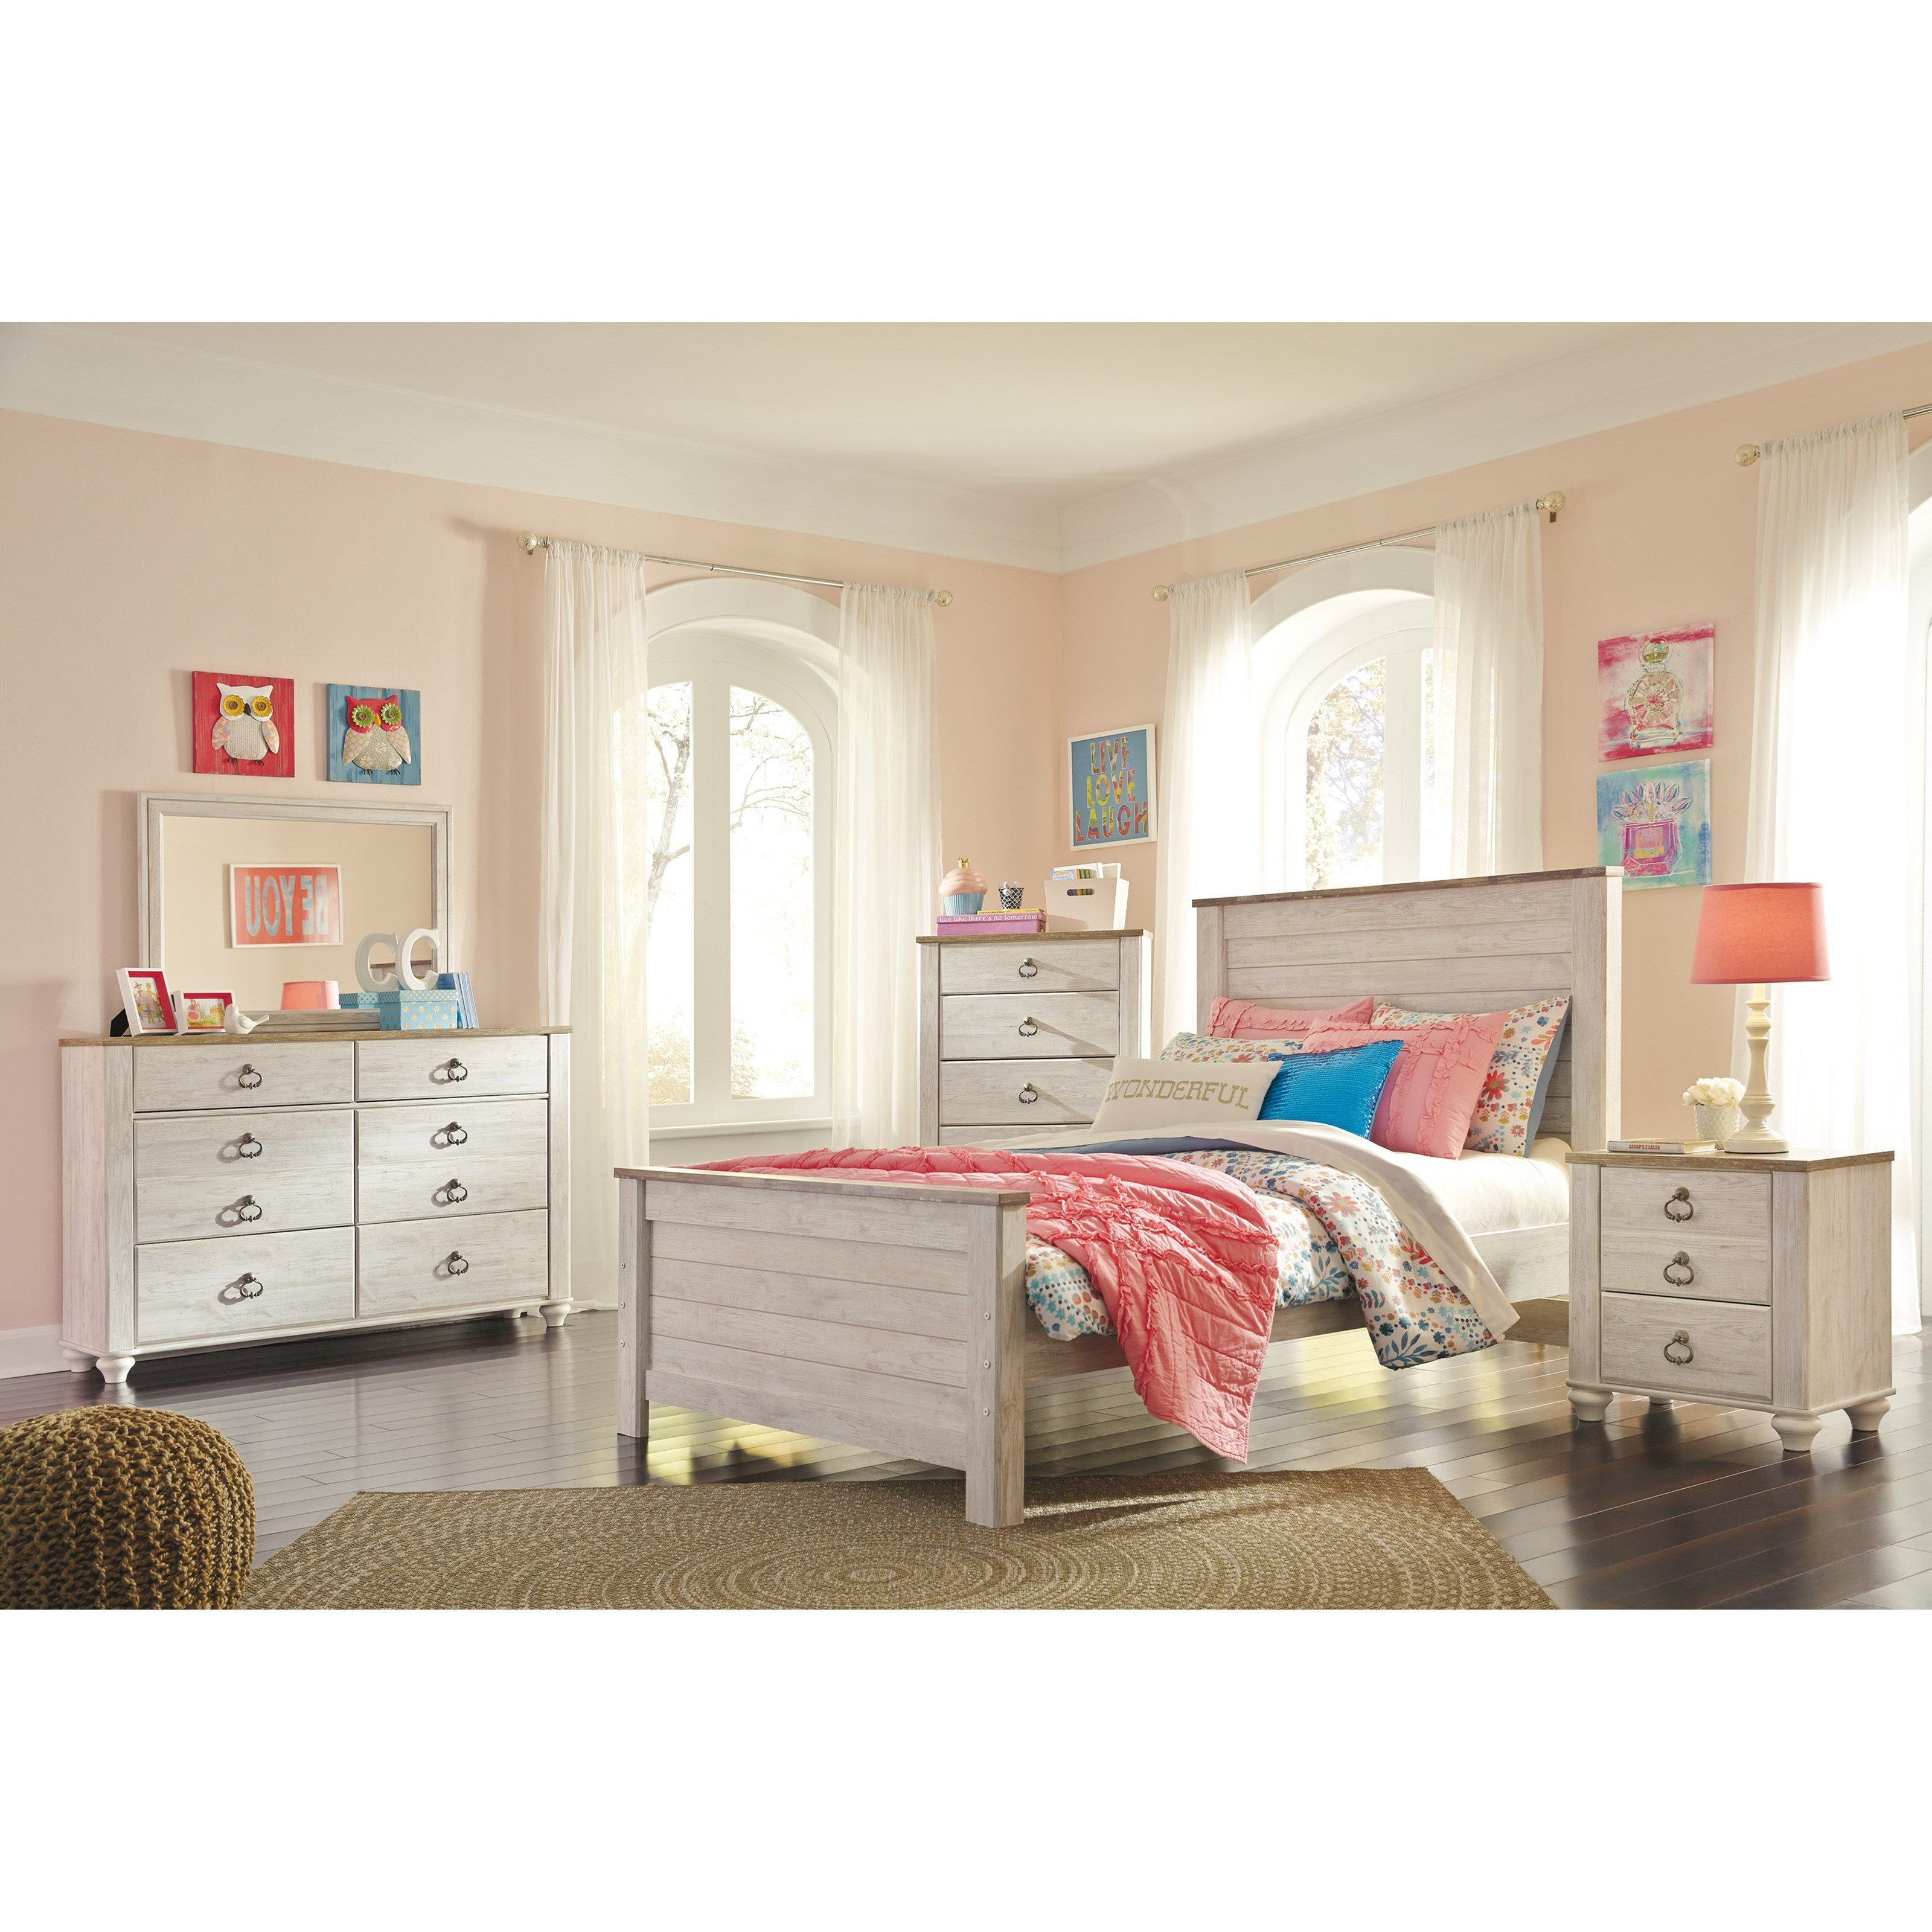 Signature design by ashley willowton full bedroom group - Ashley furniture full bedroom sets ...